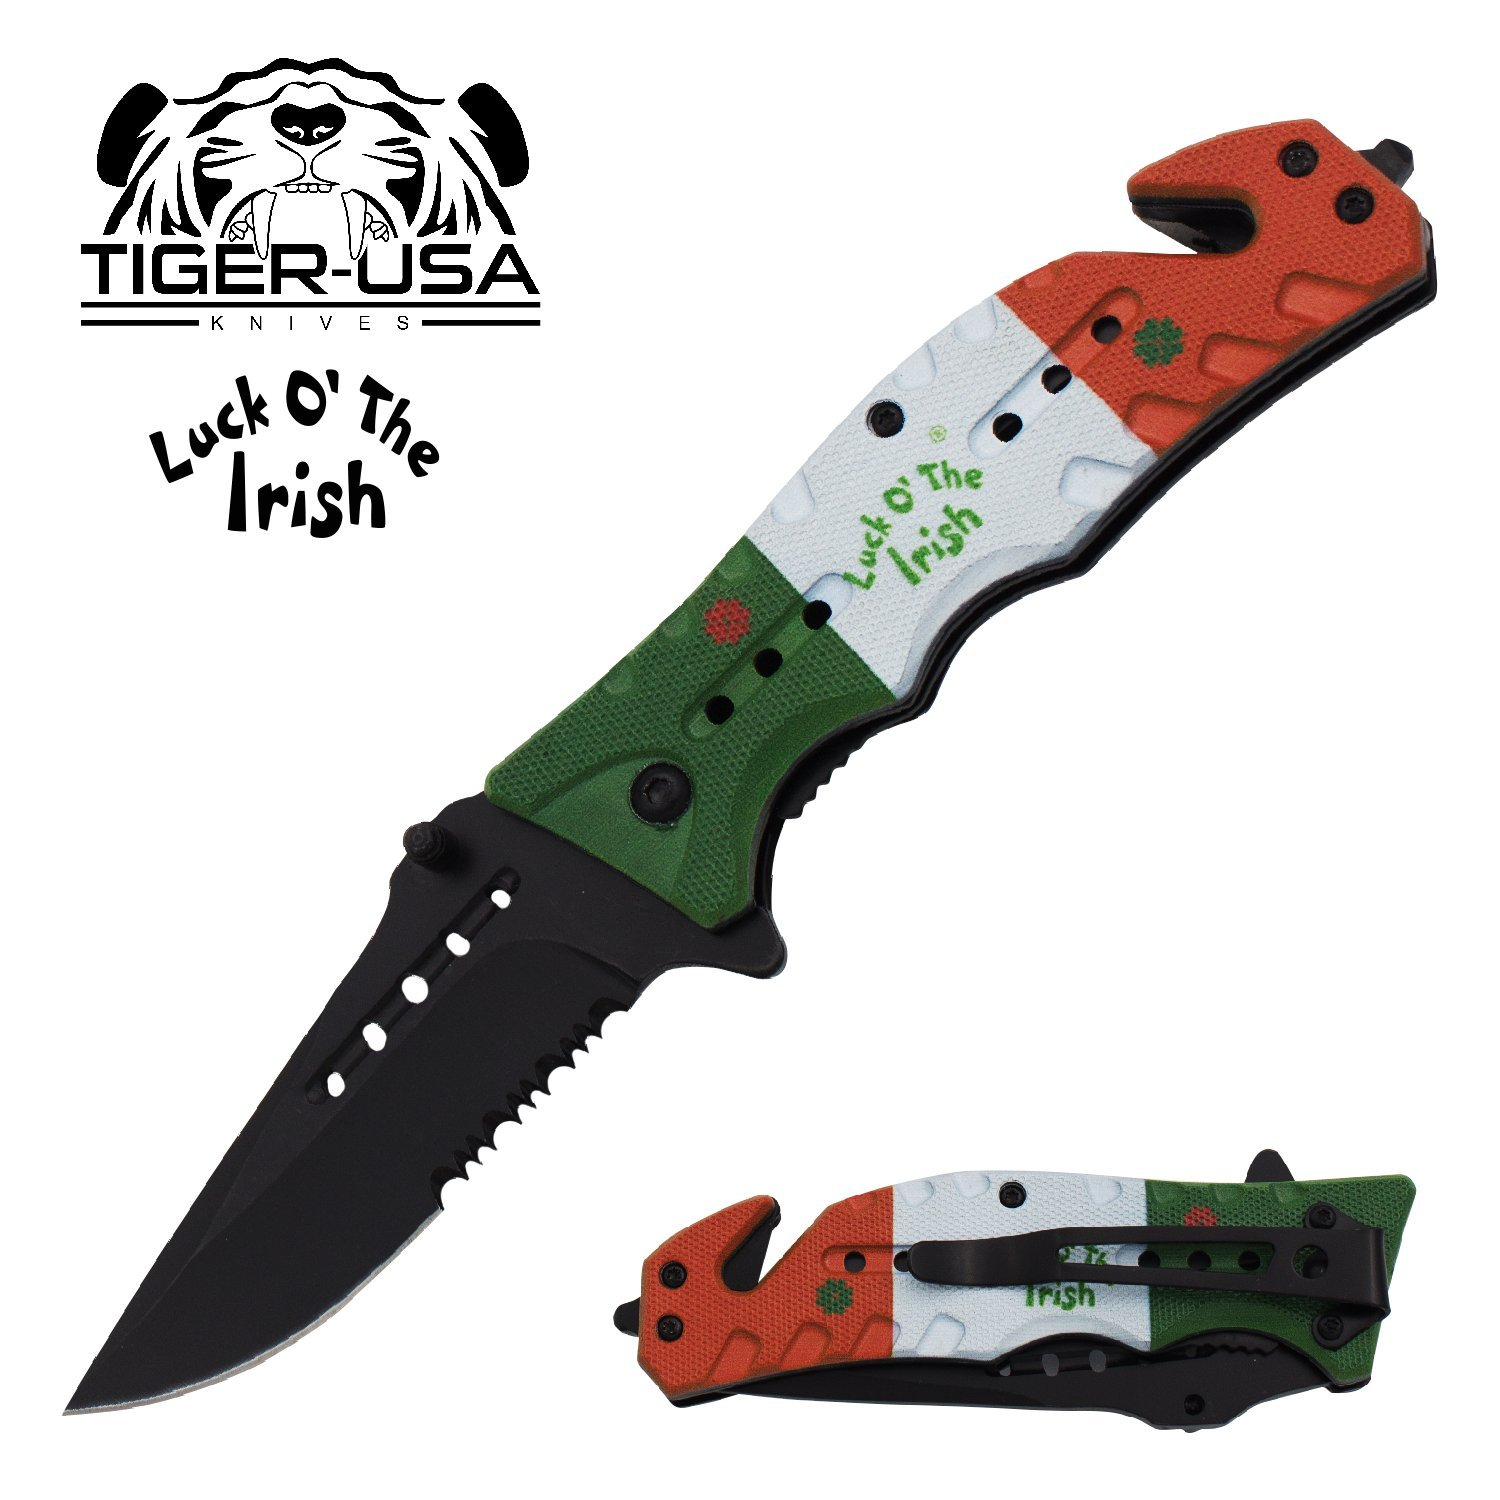 Luck O' The Irish Four Leaf Clover Pocket Knife on the Irish Flag -8 inch Folding Knife Made by Tiger-USA